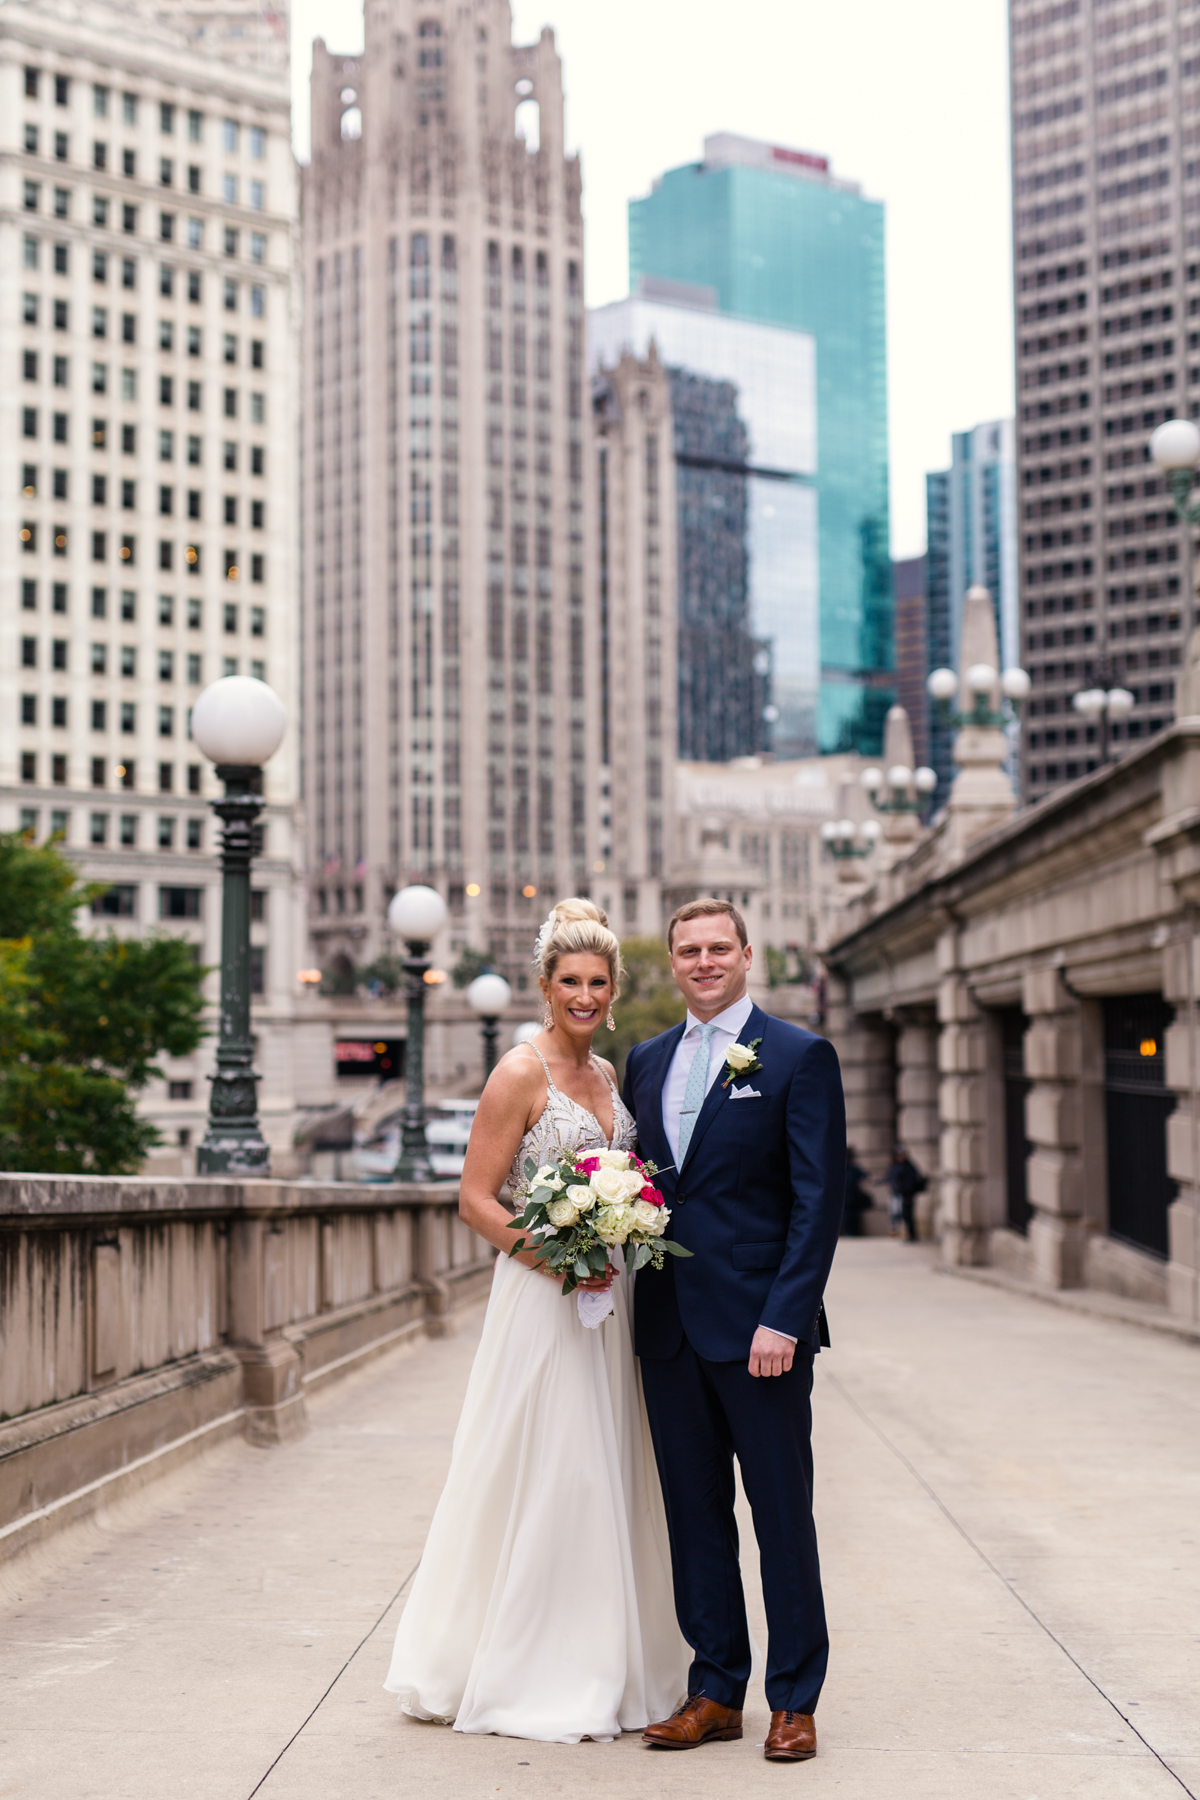 City-Winery-Chicago-wedding-by-Emma-Mullins-Photography-17